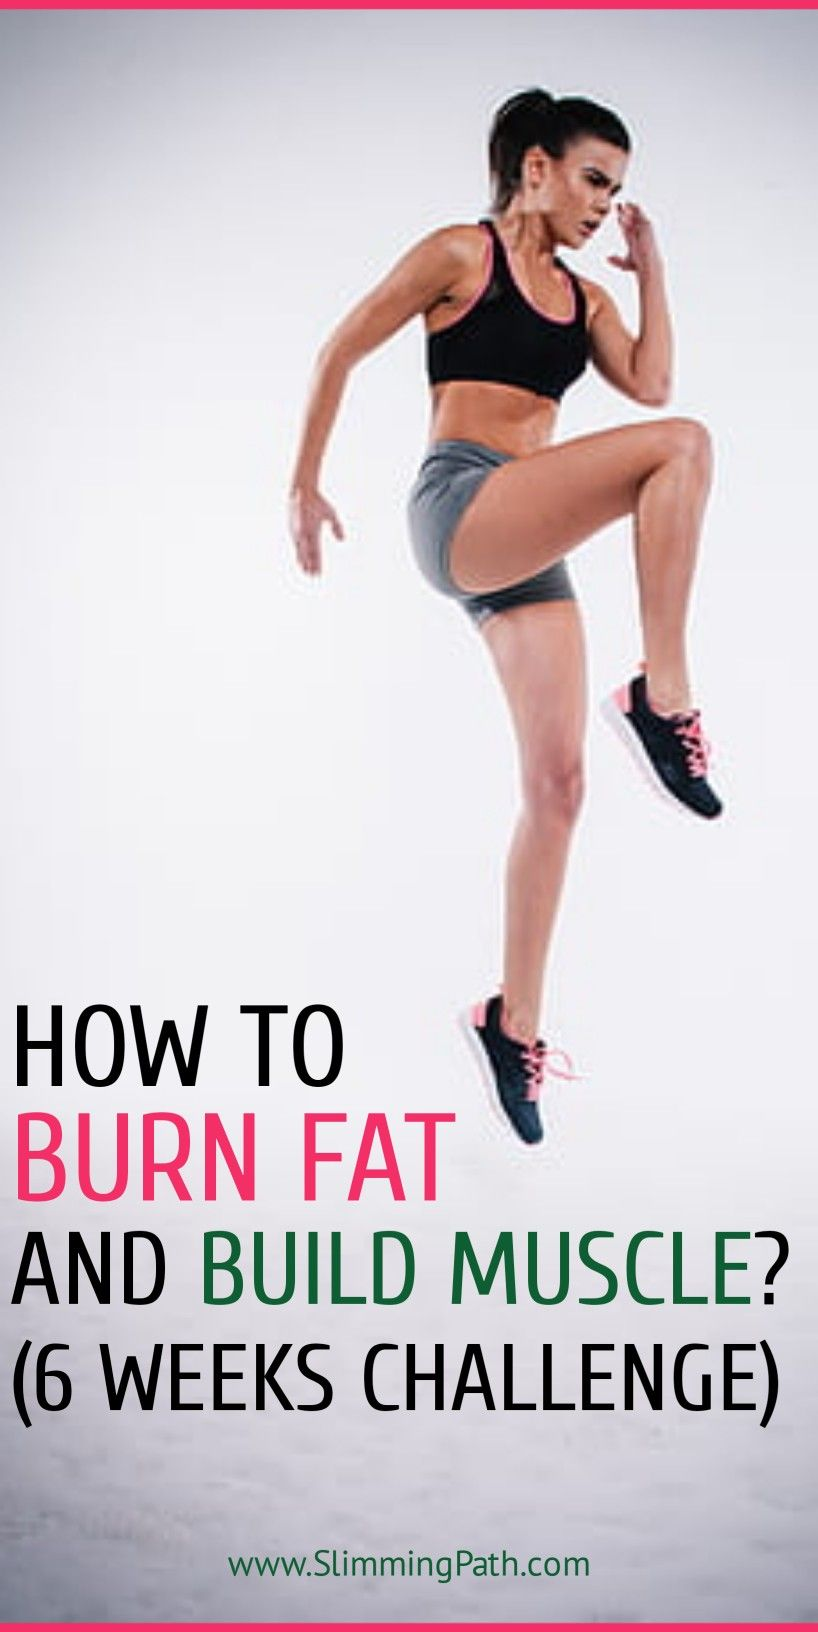 How To Burn Fat and Build Muscle FAST?